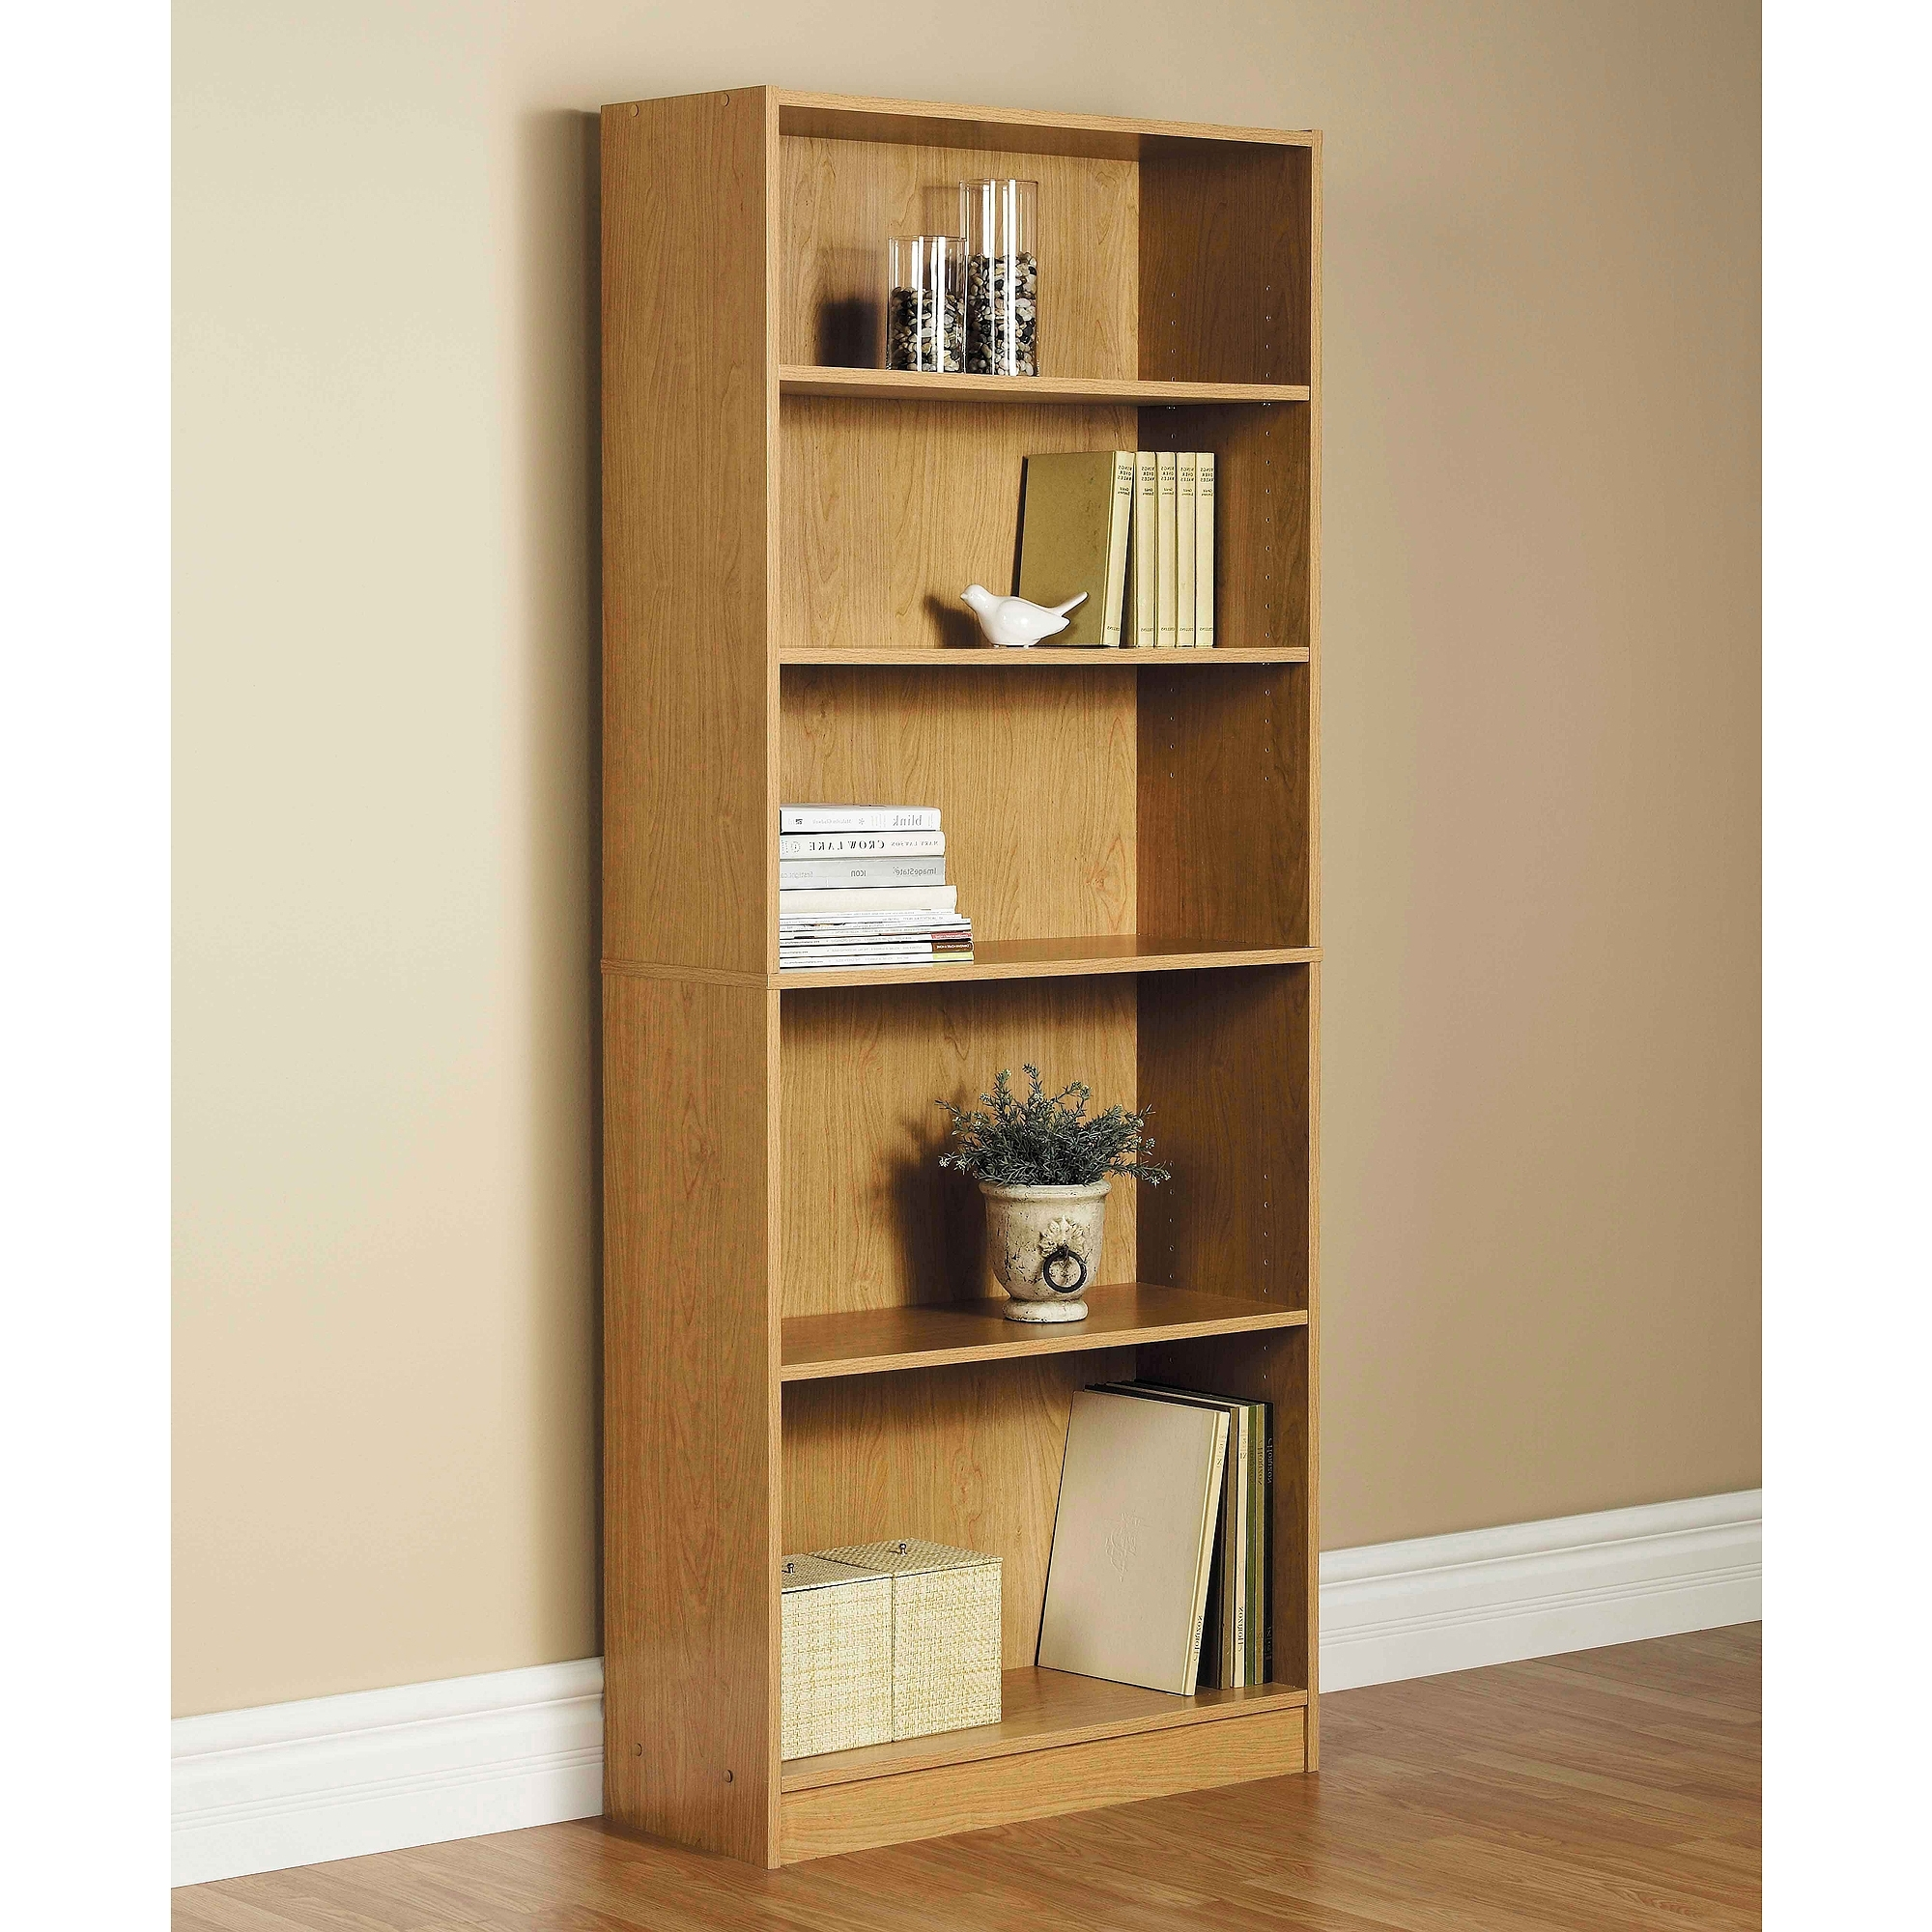 Bookcases – Walmart Throughout Latest Black Bookcases Walmart (View 8 of 15)